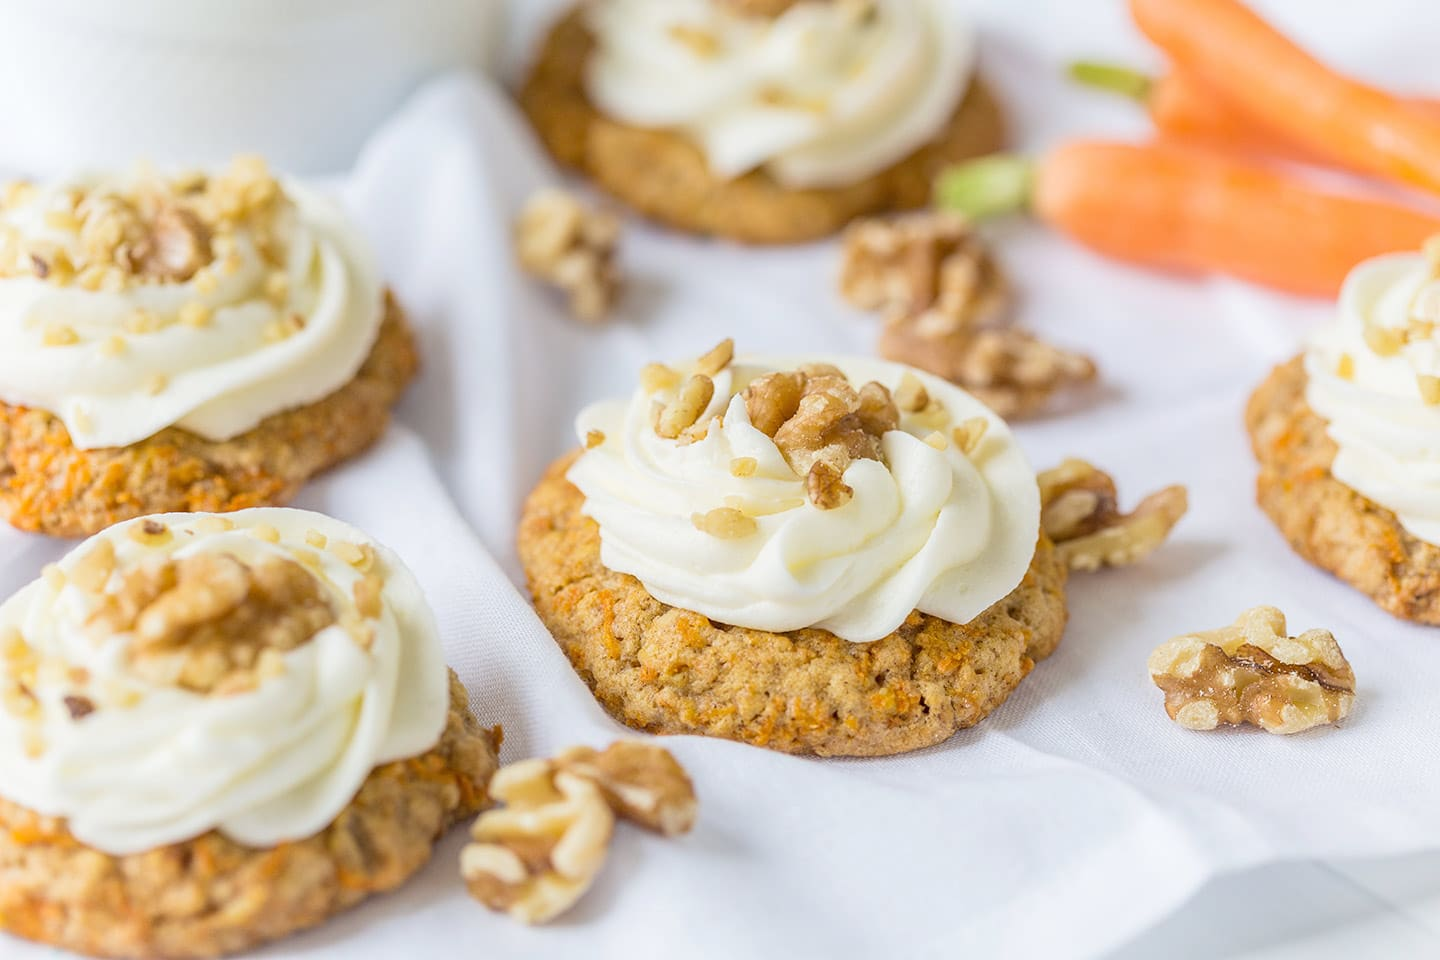 Walnut Carrot Cake Cookies with Cream Cheese Frosting